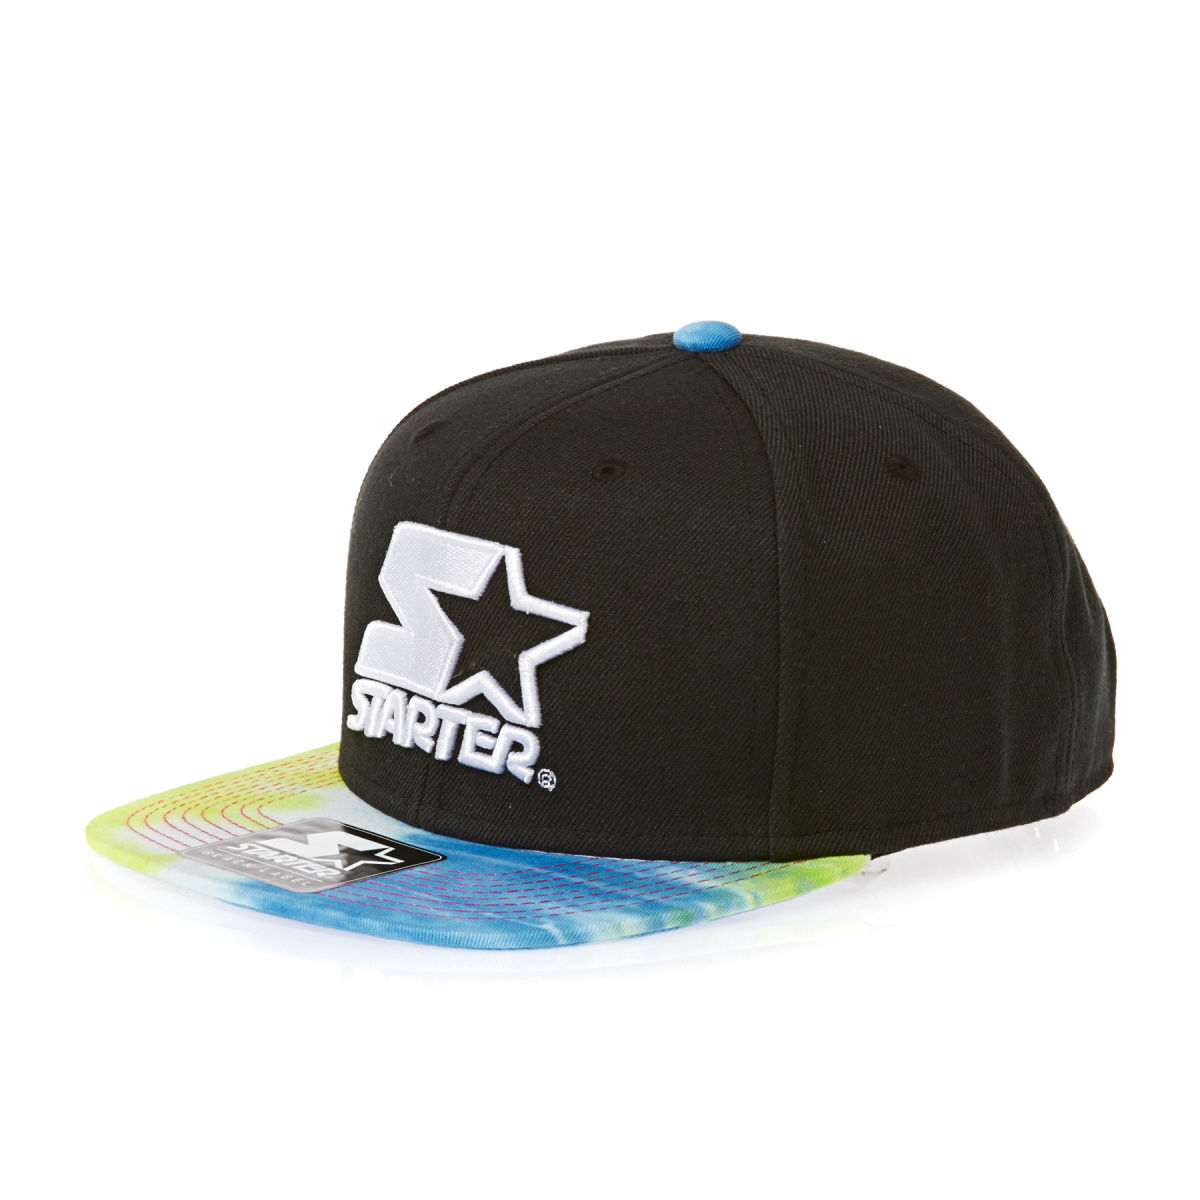 starter-caps-starter-hippy-visor-2tone-cap-black-and-multi